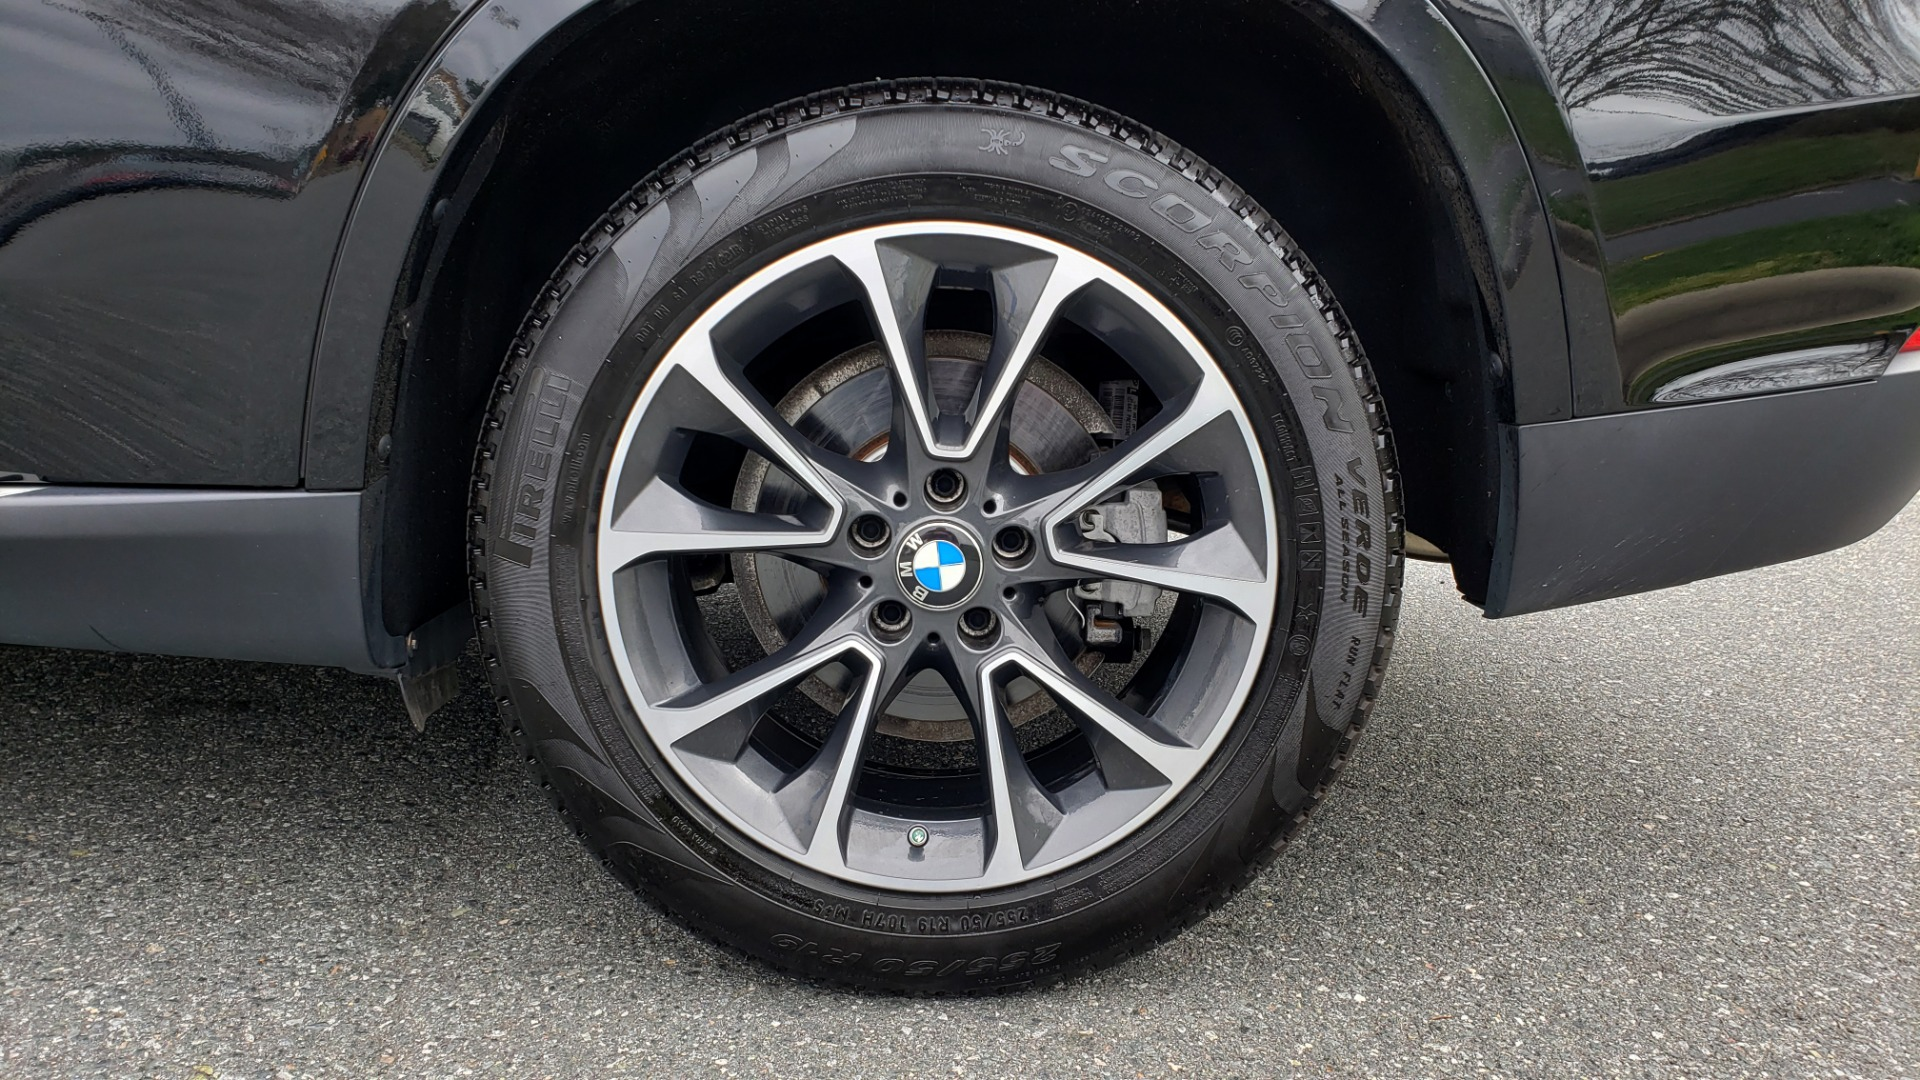 Used 2017 BMW X5 XDRIVE35I / PREM LUX PKG / DRVR ASST / CLD WTHR / APPLE CAR PLAY for sale Sold at Formula Imports in Charlotte NC 28227 83